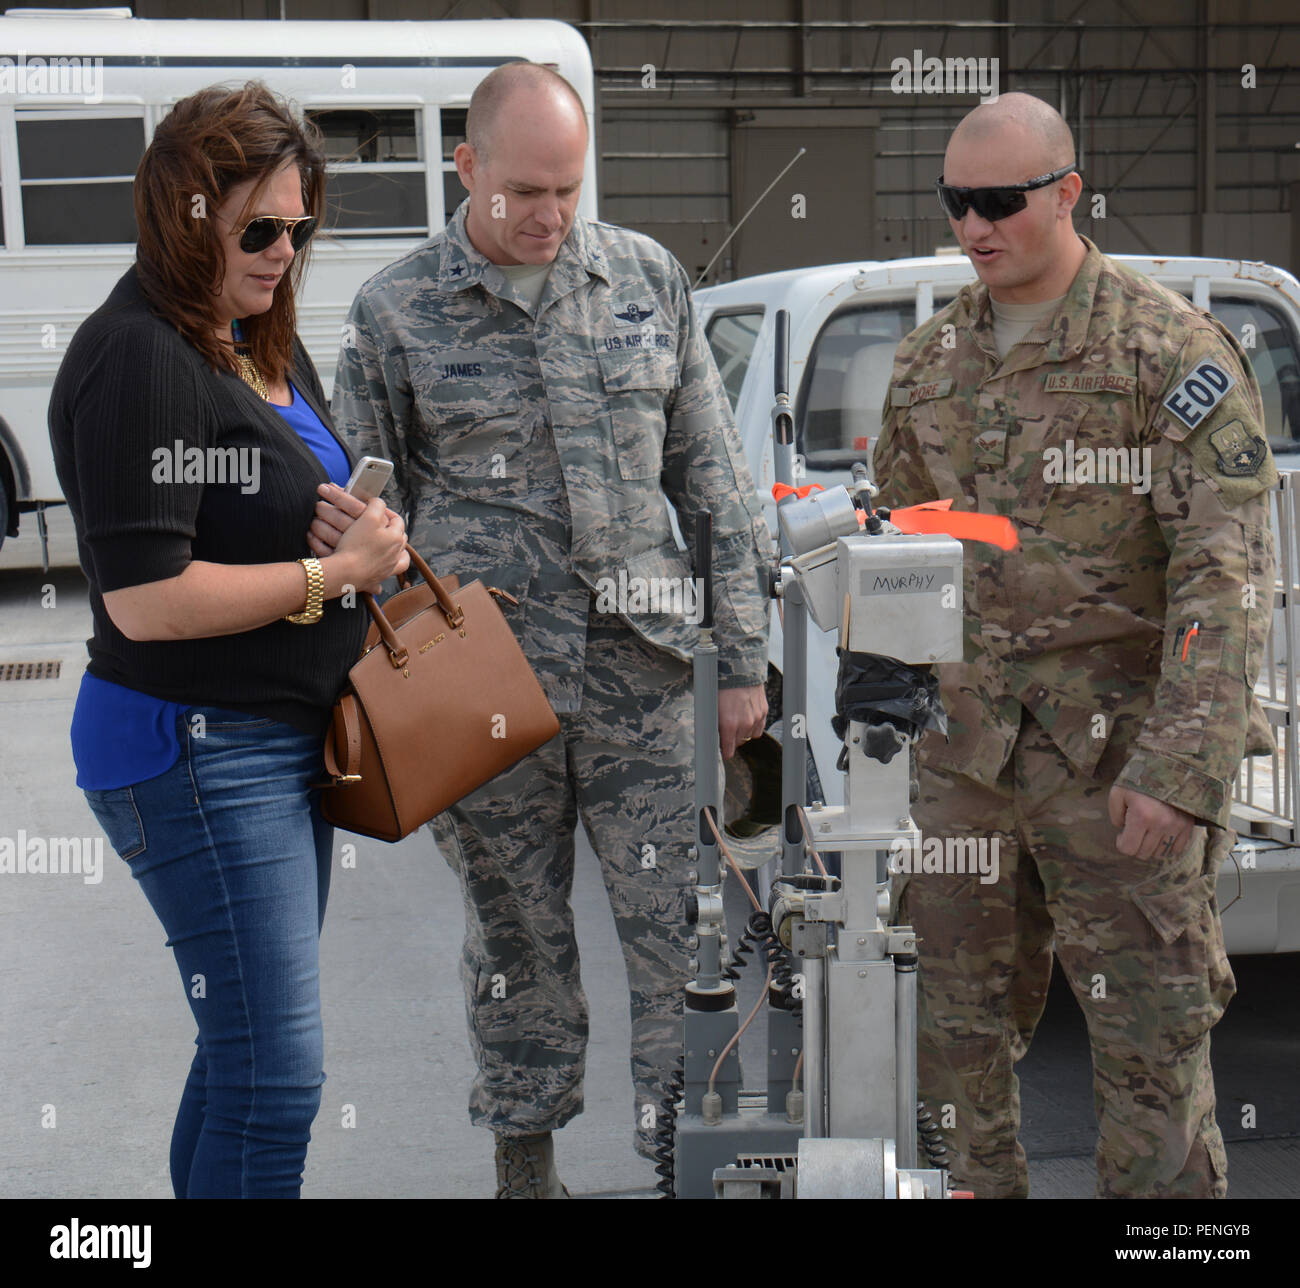 Brig. Gen. Darren James, 379th Air Expeditionary Wing commander, and his wife, Melissa James, listen to Senior Airman Taylor Moore, 379th Expeditionary Civil Engineer Squadron Explosive Ordnance Flight technician; explain how the F-6 robot operates during the annual Flight Line Fest at Al Udeid Air Base, Qatar, Jan. 10. The F-6 robot helps EOD technicians find explosives. Flight Line Fest is a joint partnership between the 379 AEW and Qatar Emiri Air Force held to foster relations between Qatar and the United States. (U.S. Air Force photo by Tech. Sgt. James Hodgman/Released) - Stock Image